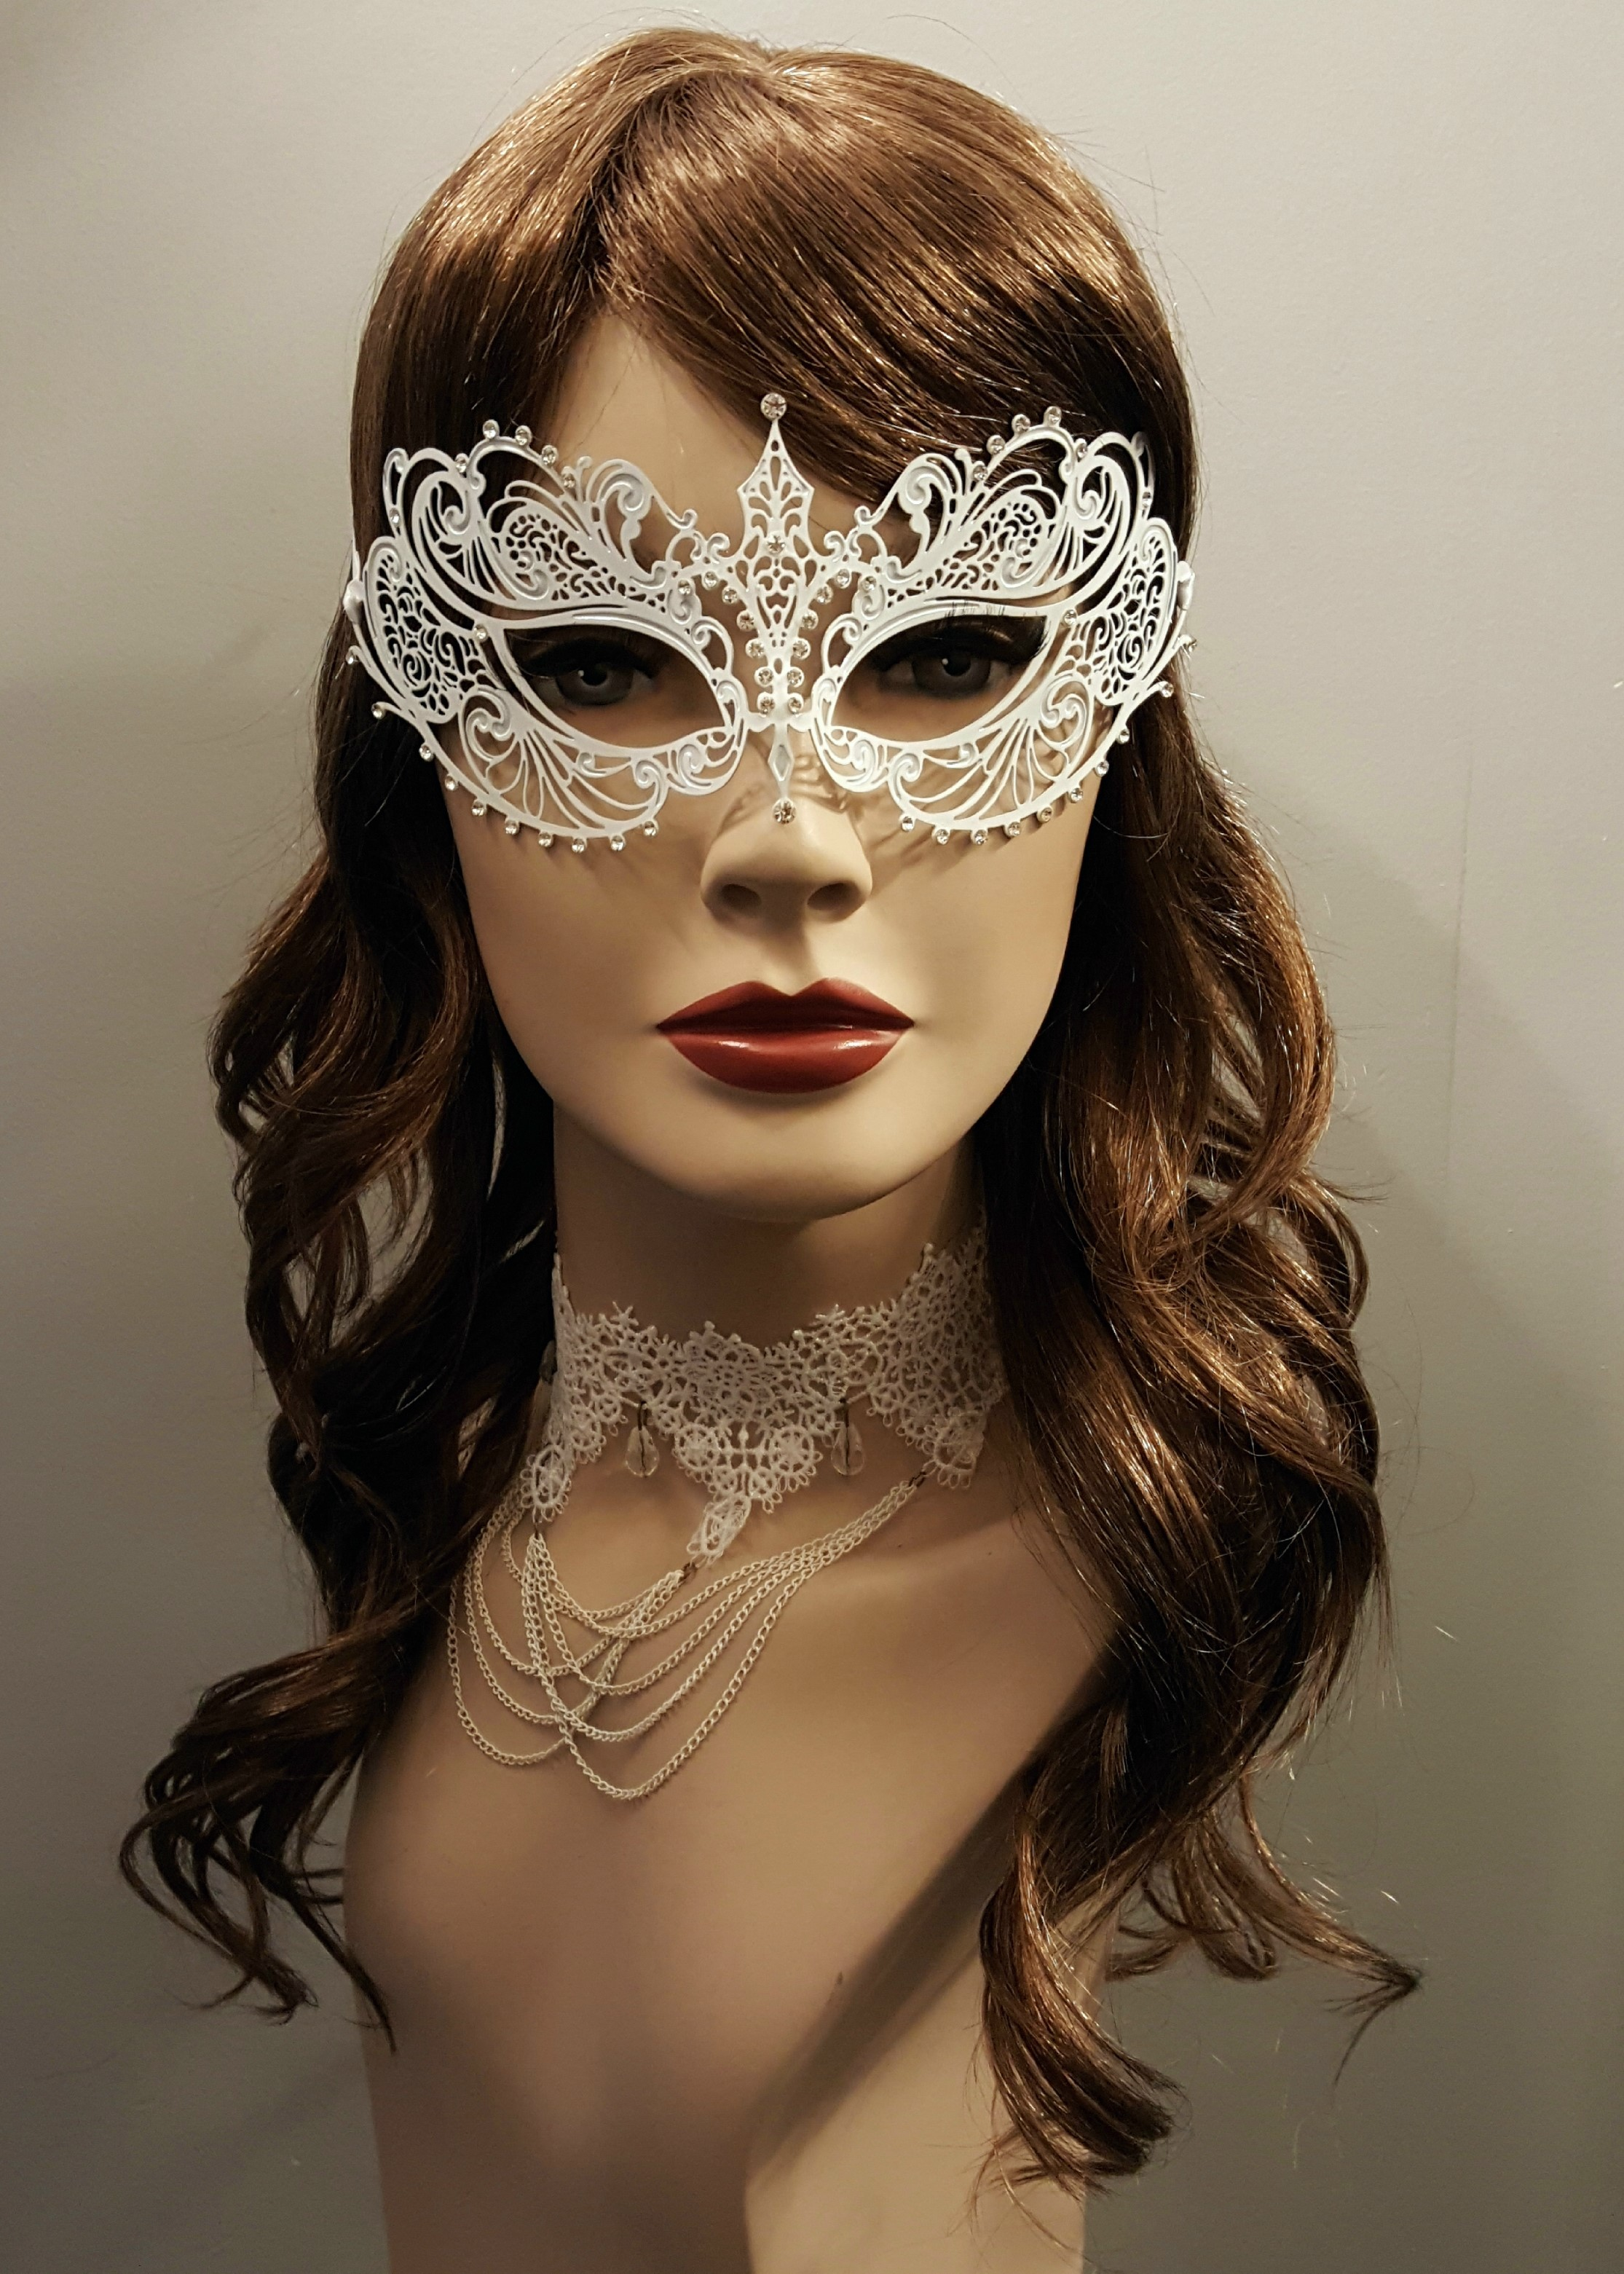 Lace choker draped chains crystal beads 2202 Edmonton